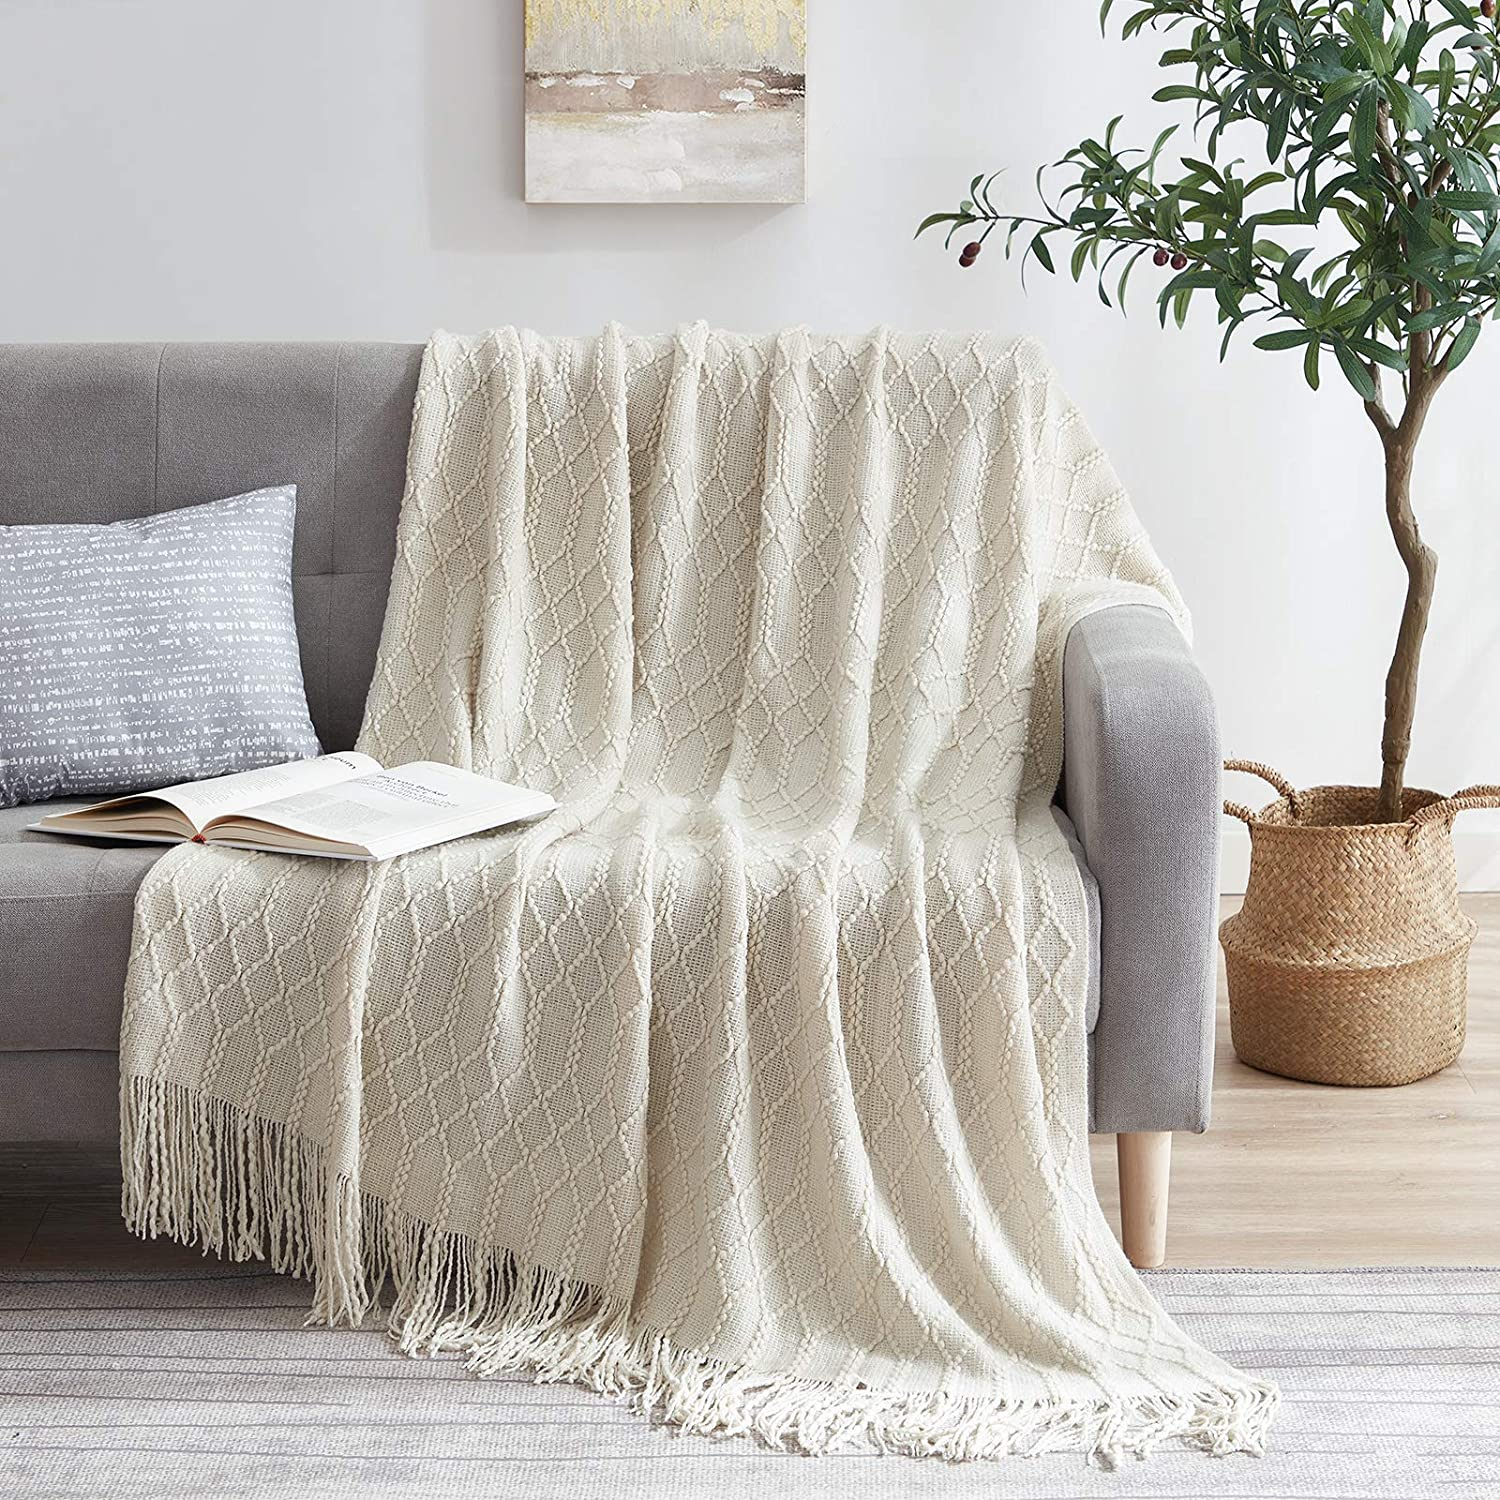 Molly Rocky 100% Acrylic Knitted Blanket Ranking TOP3 Solid Throw Textured Translated So